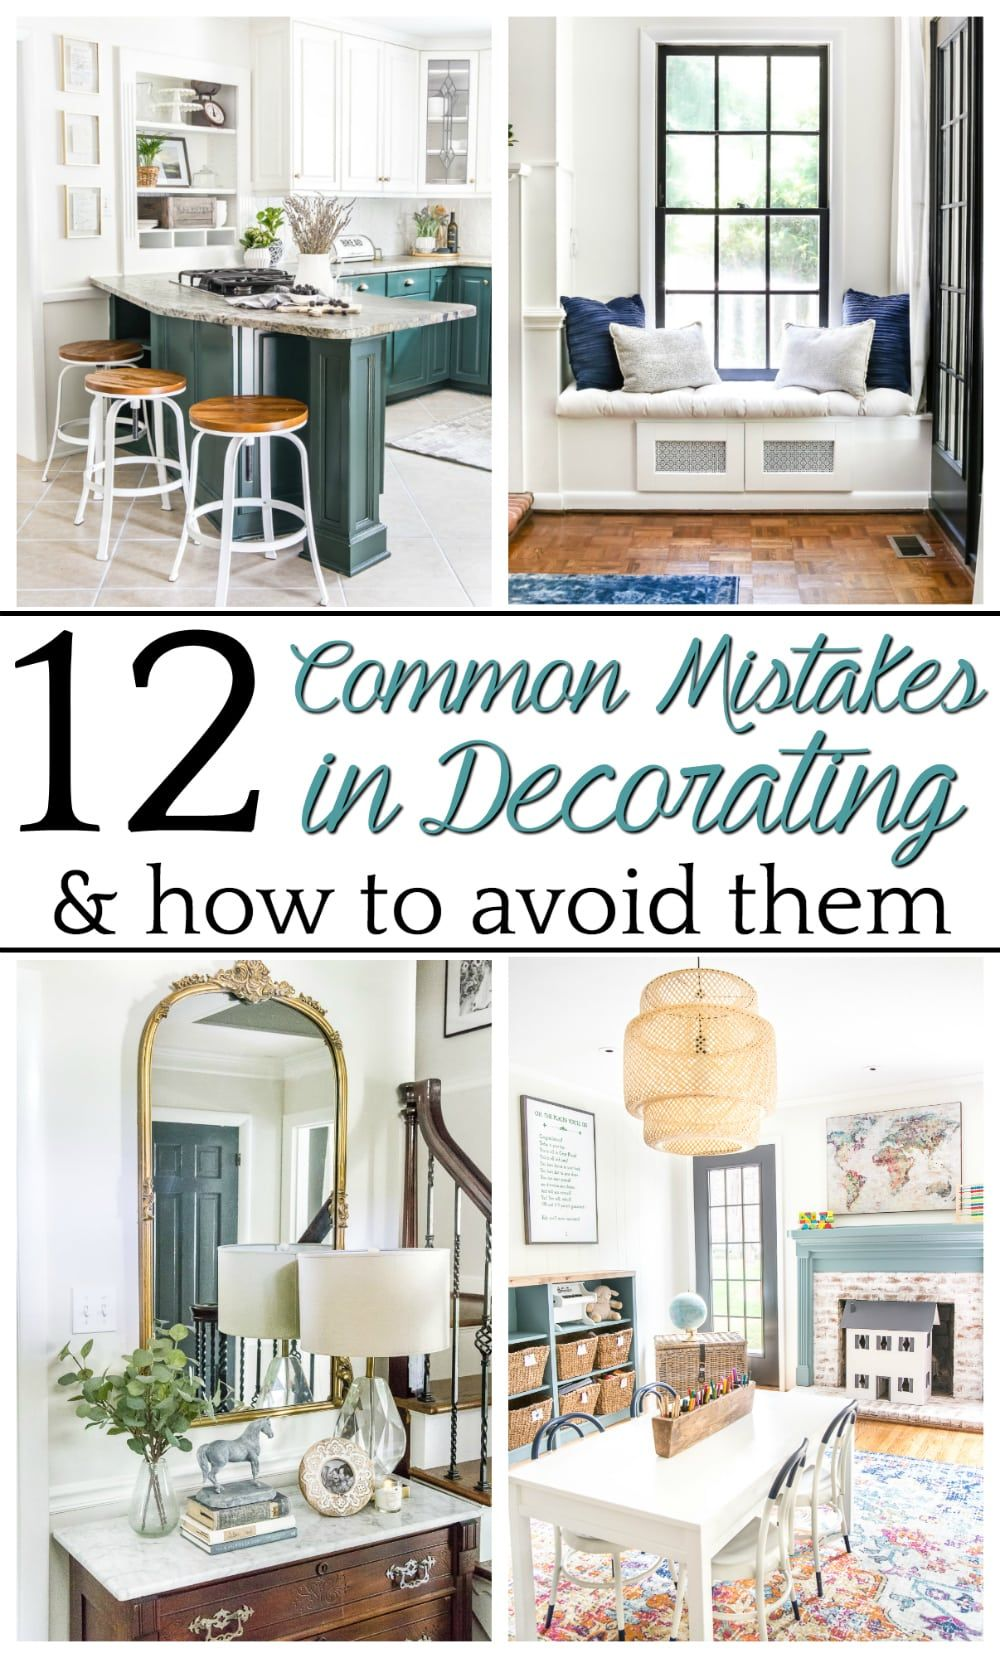 12 of the most common decorating mistakes most people make when choosing paint colors furniture layouts and styling and tips on how to avoid them